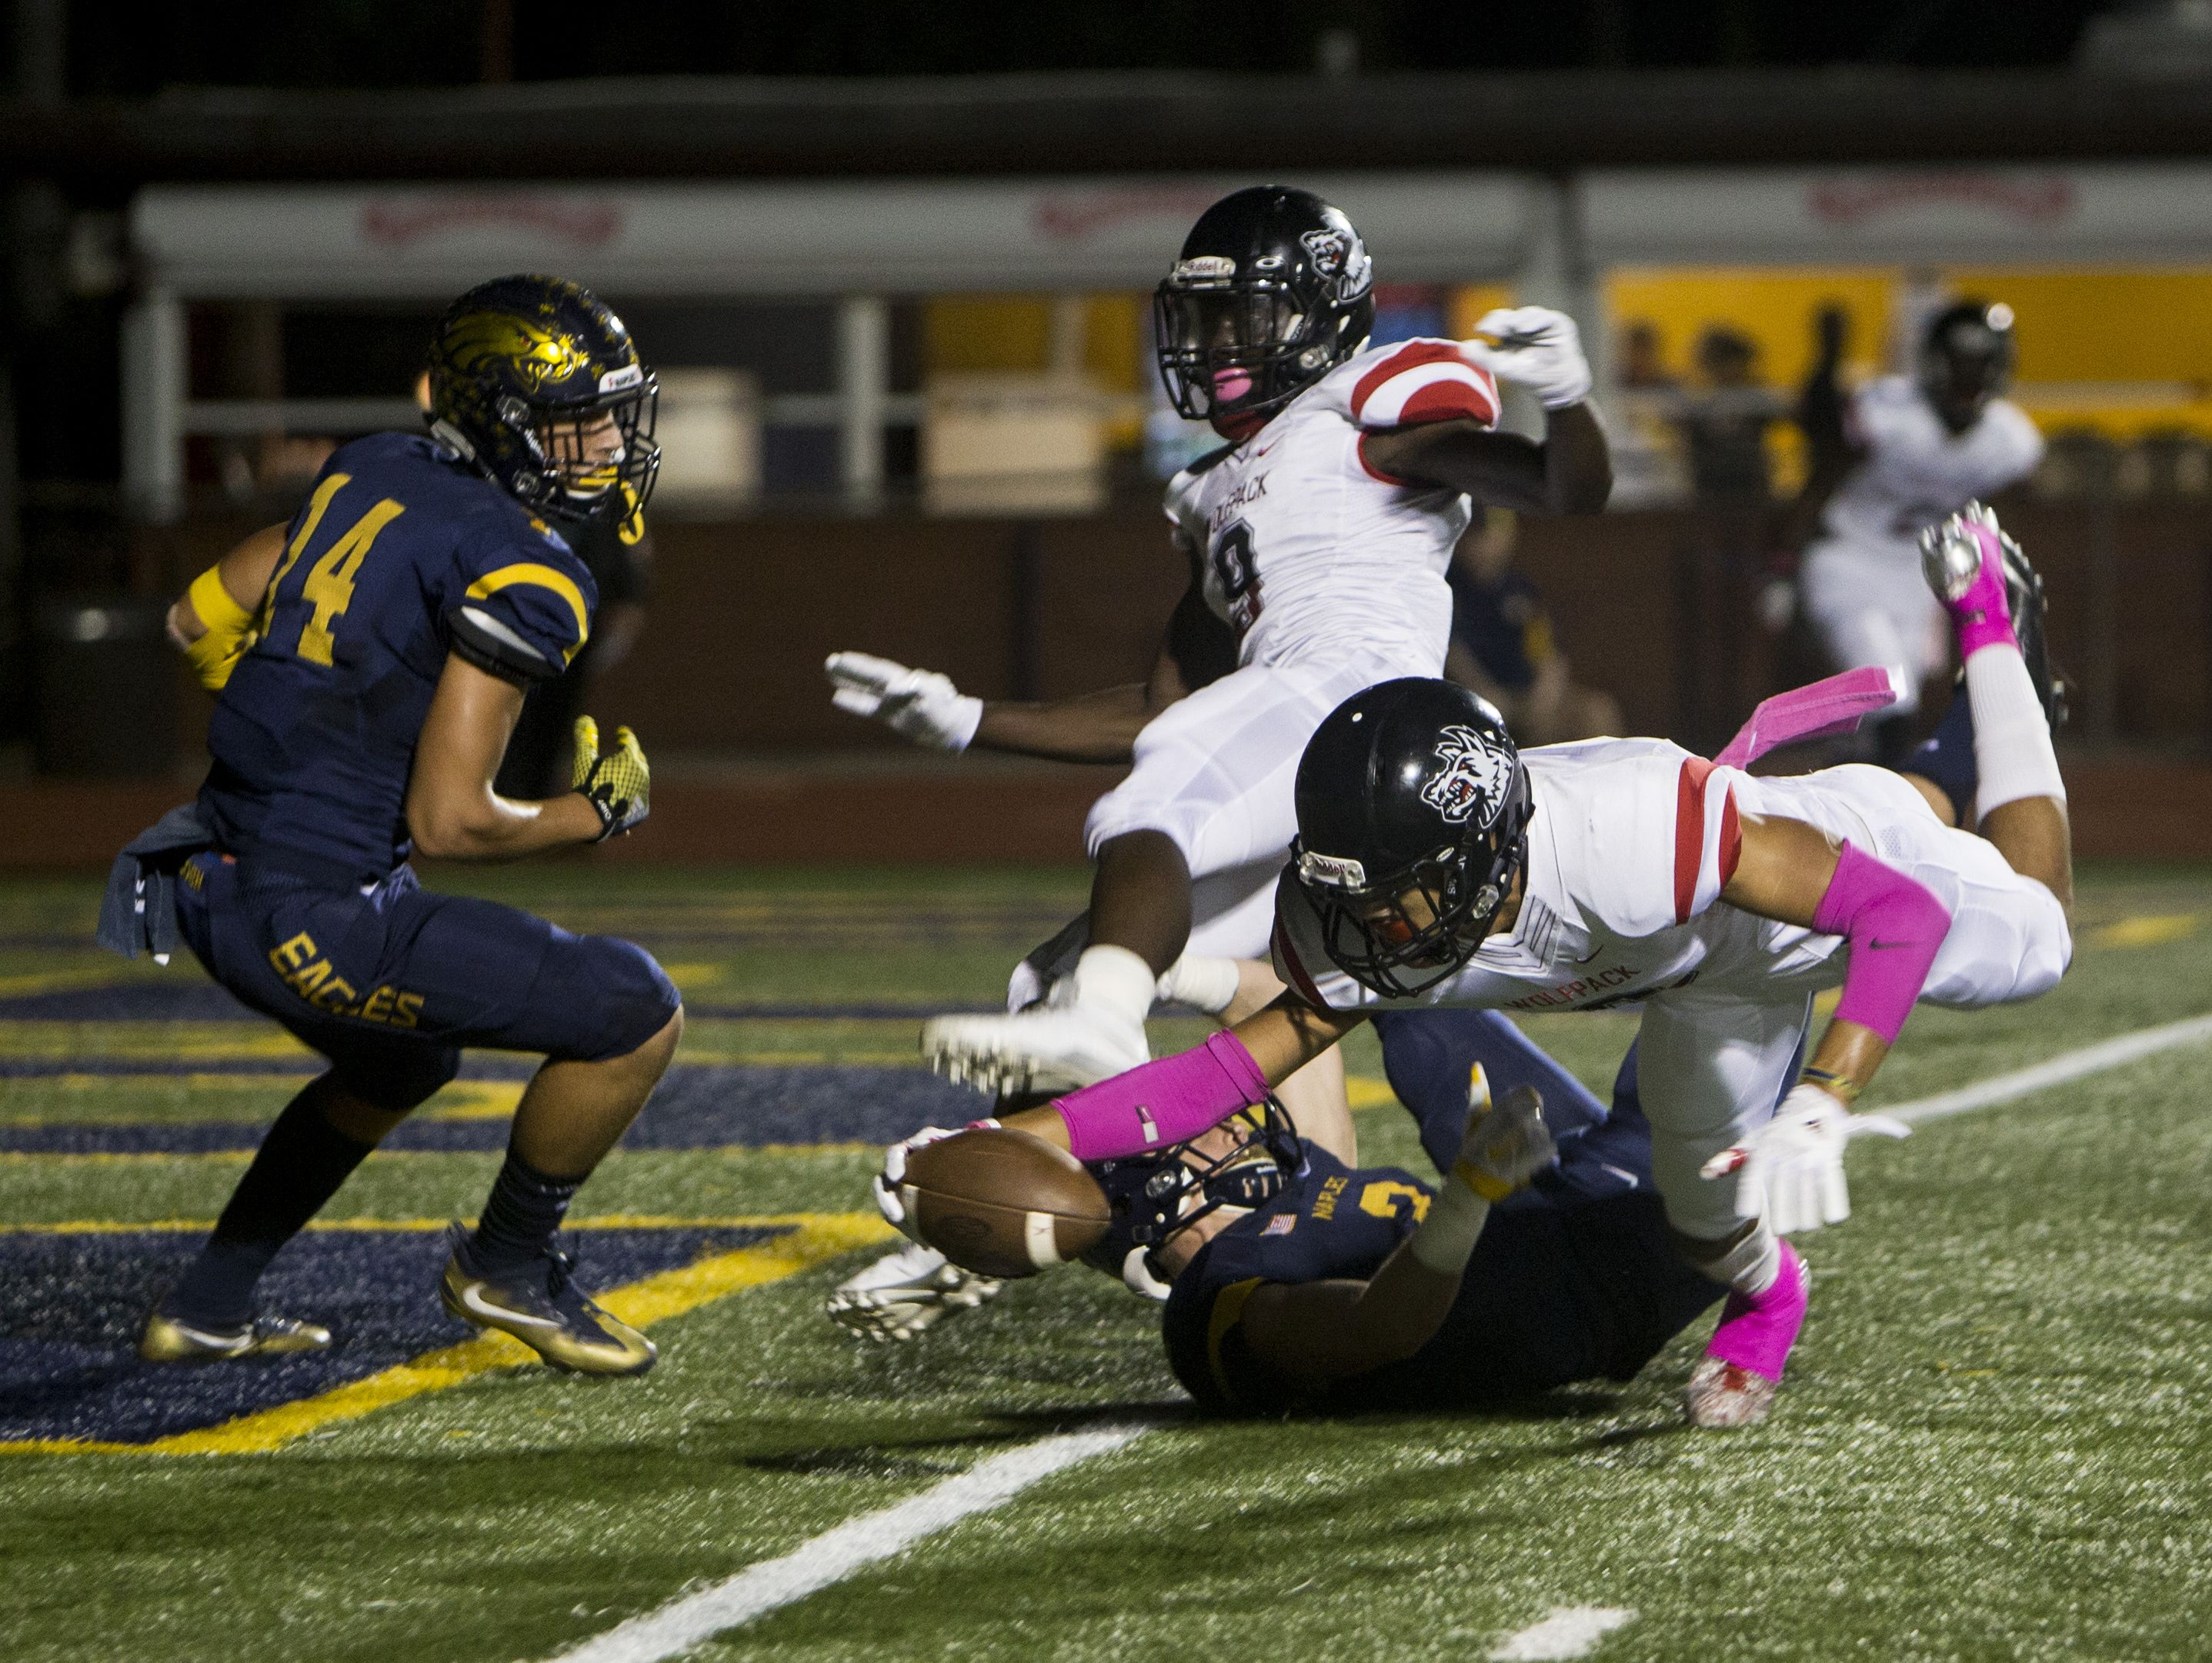 South Fort Myers (8-0) faces Gulf Coast for the District 7A-12 title on Friday.